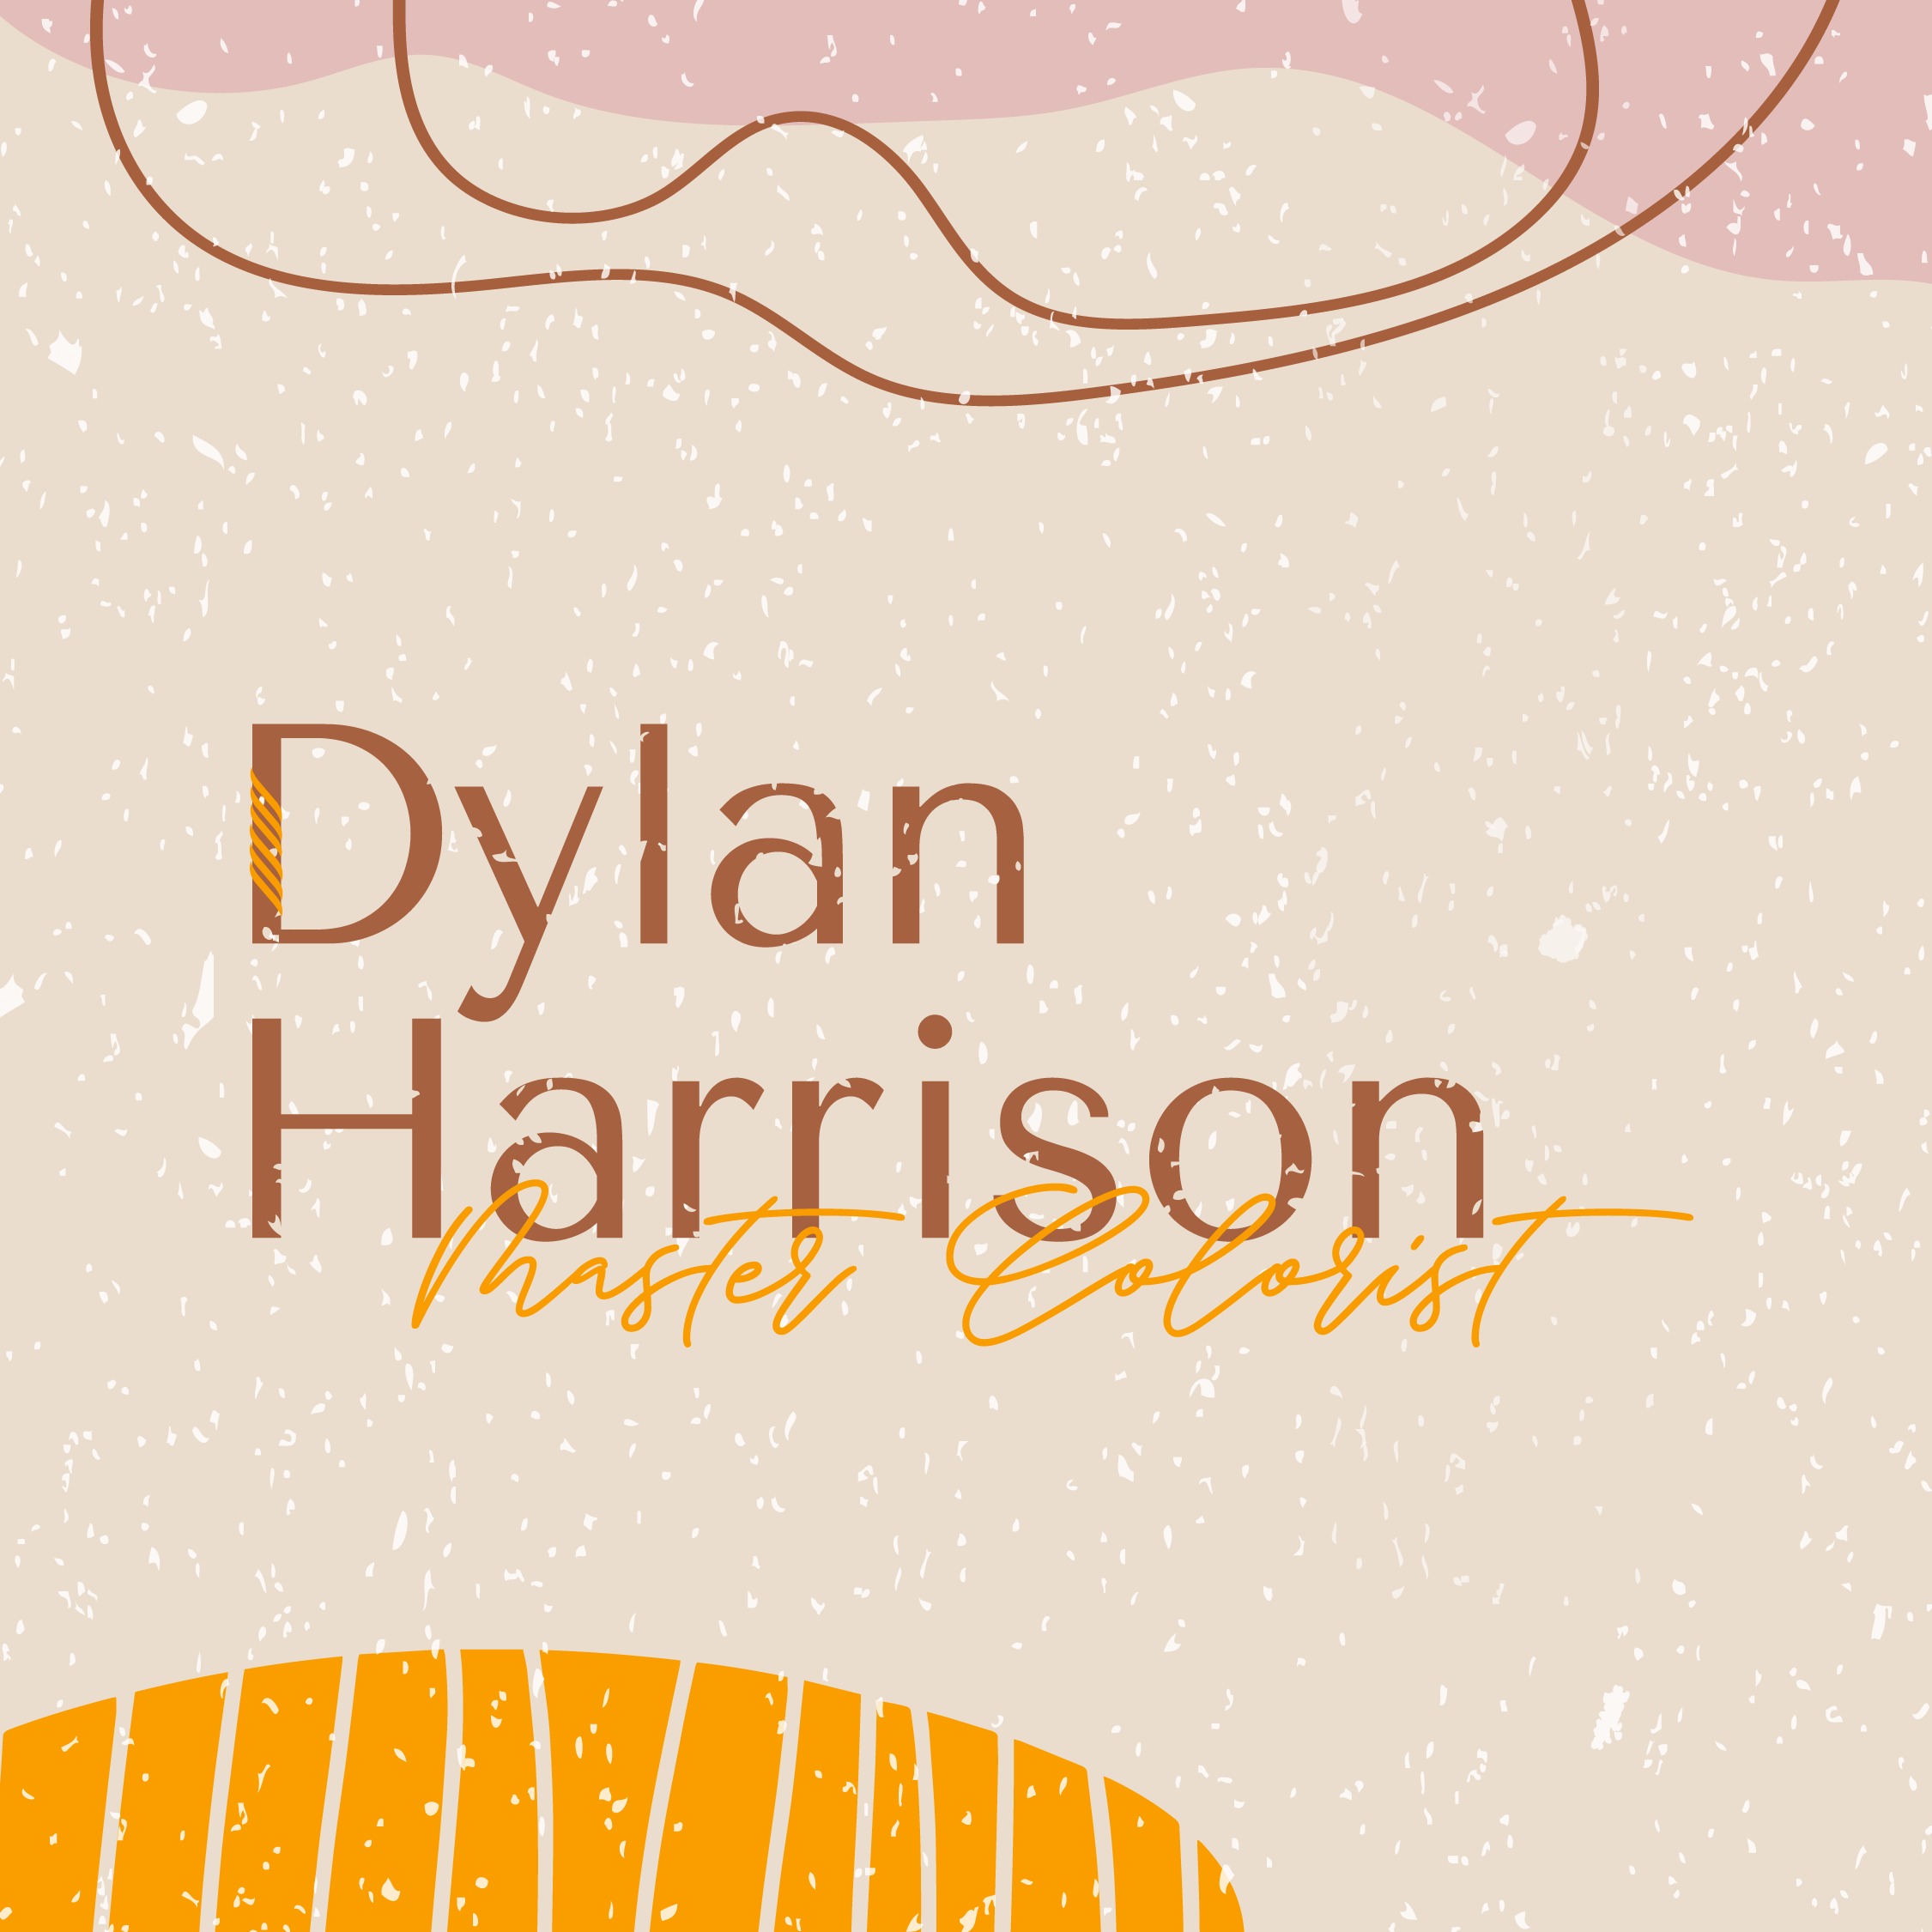 Logo created for Dylan Harrison by VZNCY